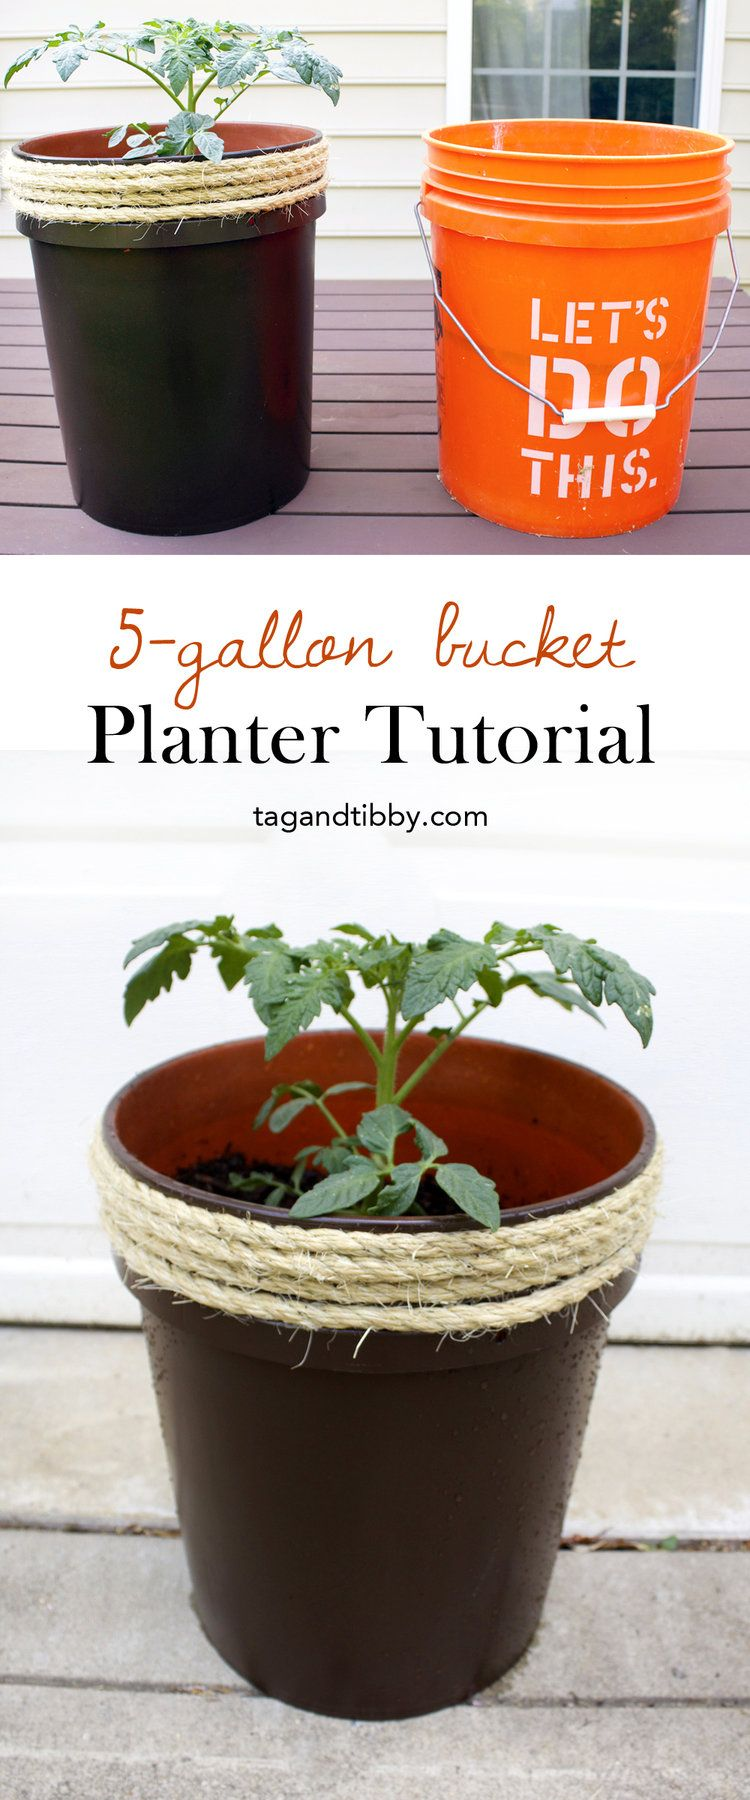 How To Make A Planter From A 5 Gallon Bucket Planters